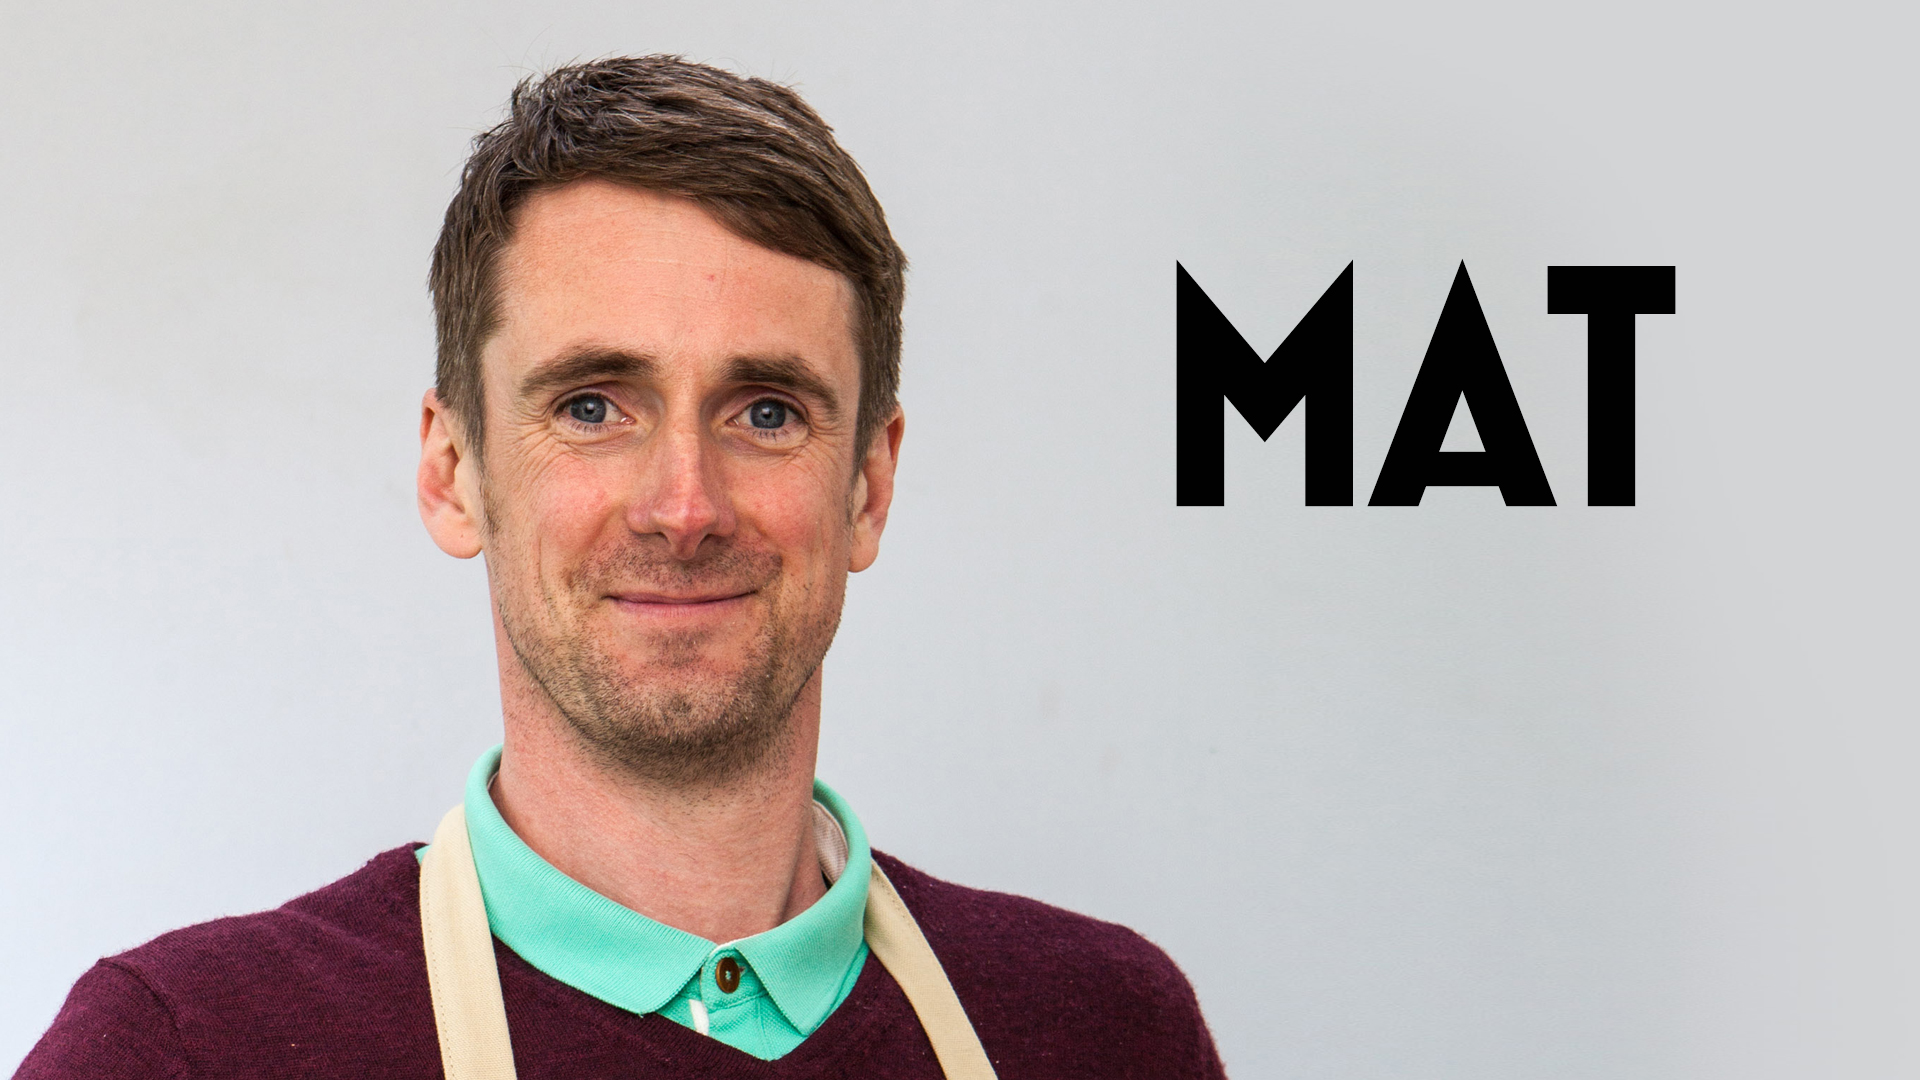 The Great British Baking Show - Mat